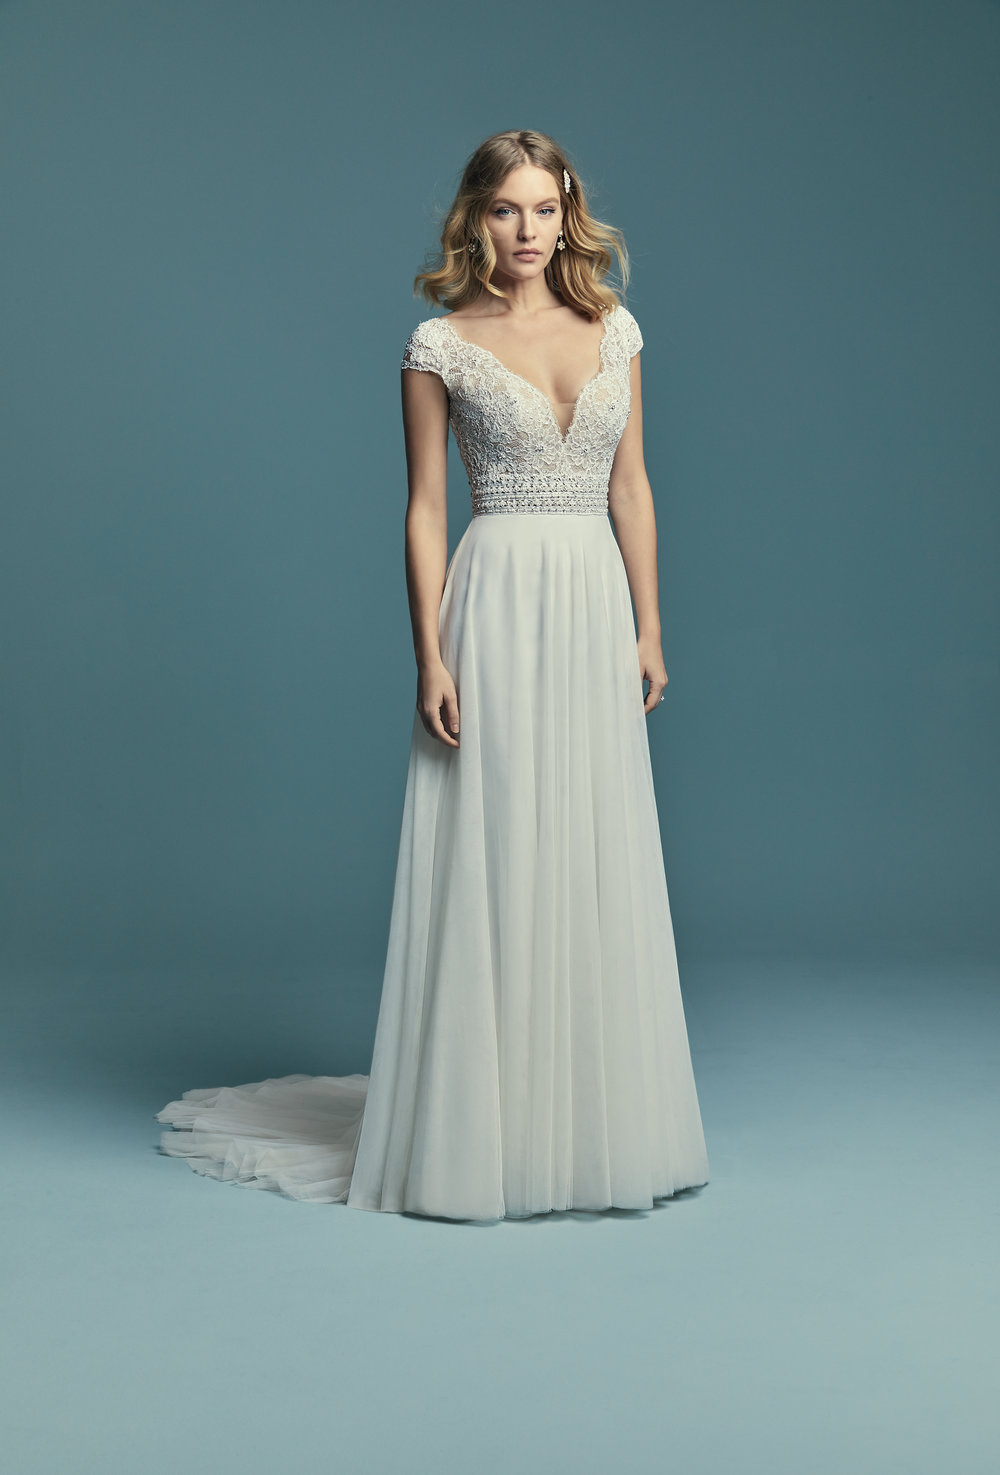 Maggie-Sottero-Monarch-8MS751-Main.jpg